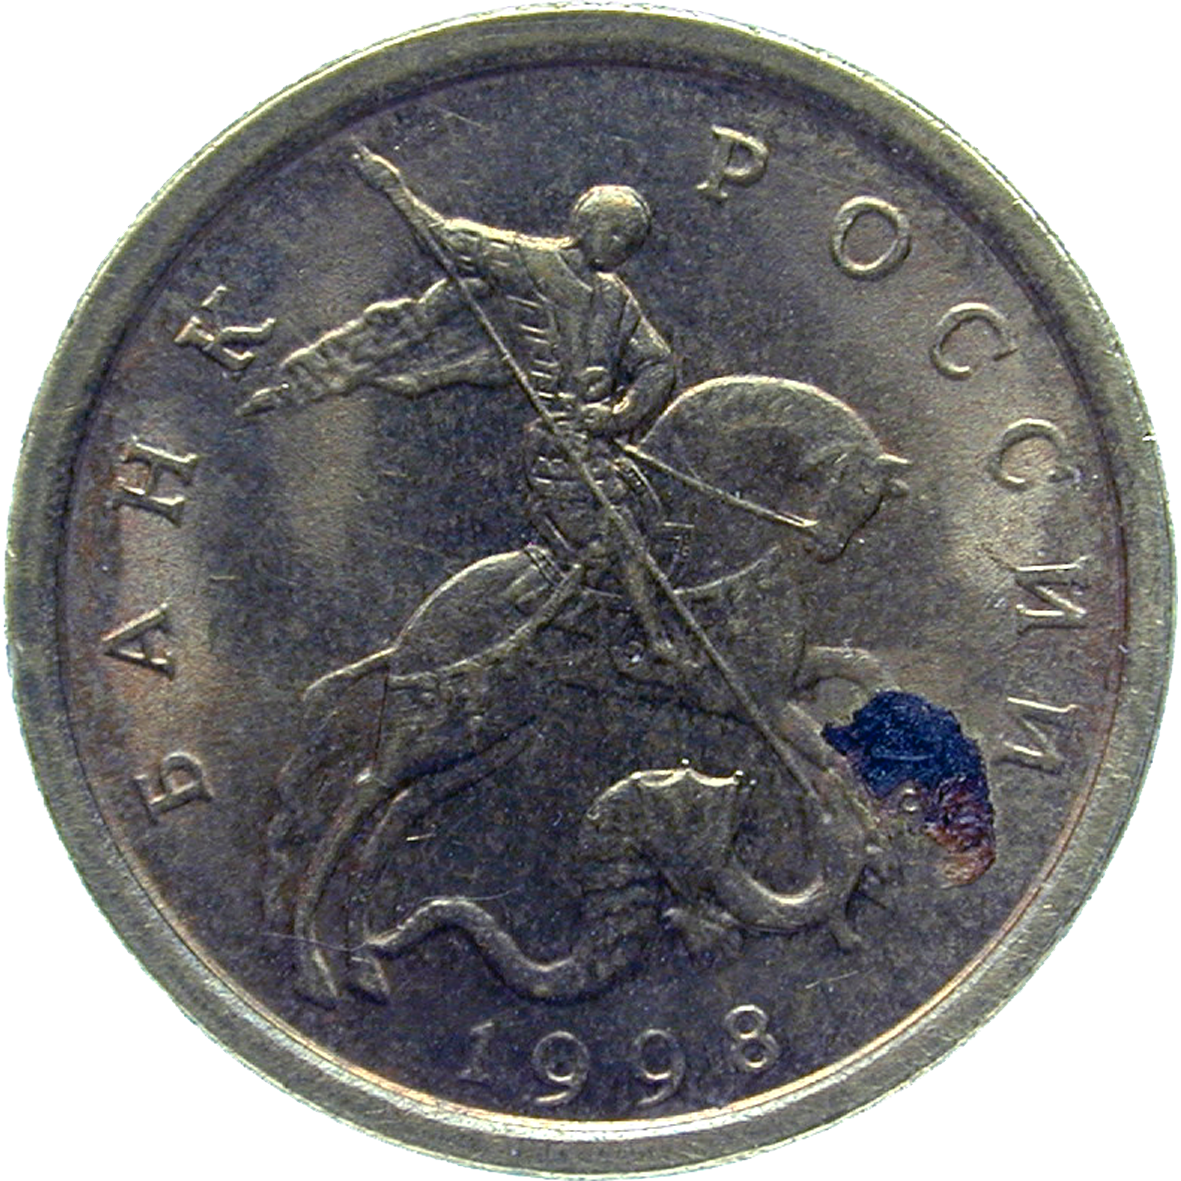 Russian Federation, 10 Kopecks 1998 (obverse)